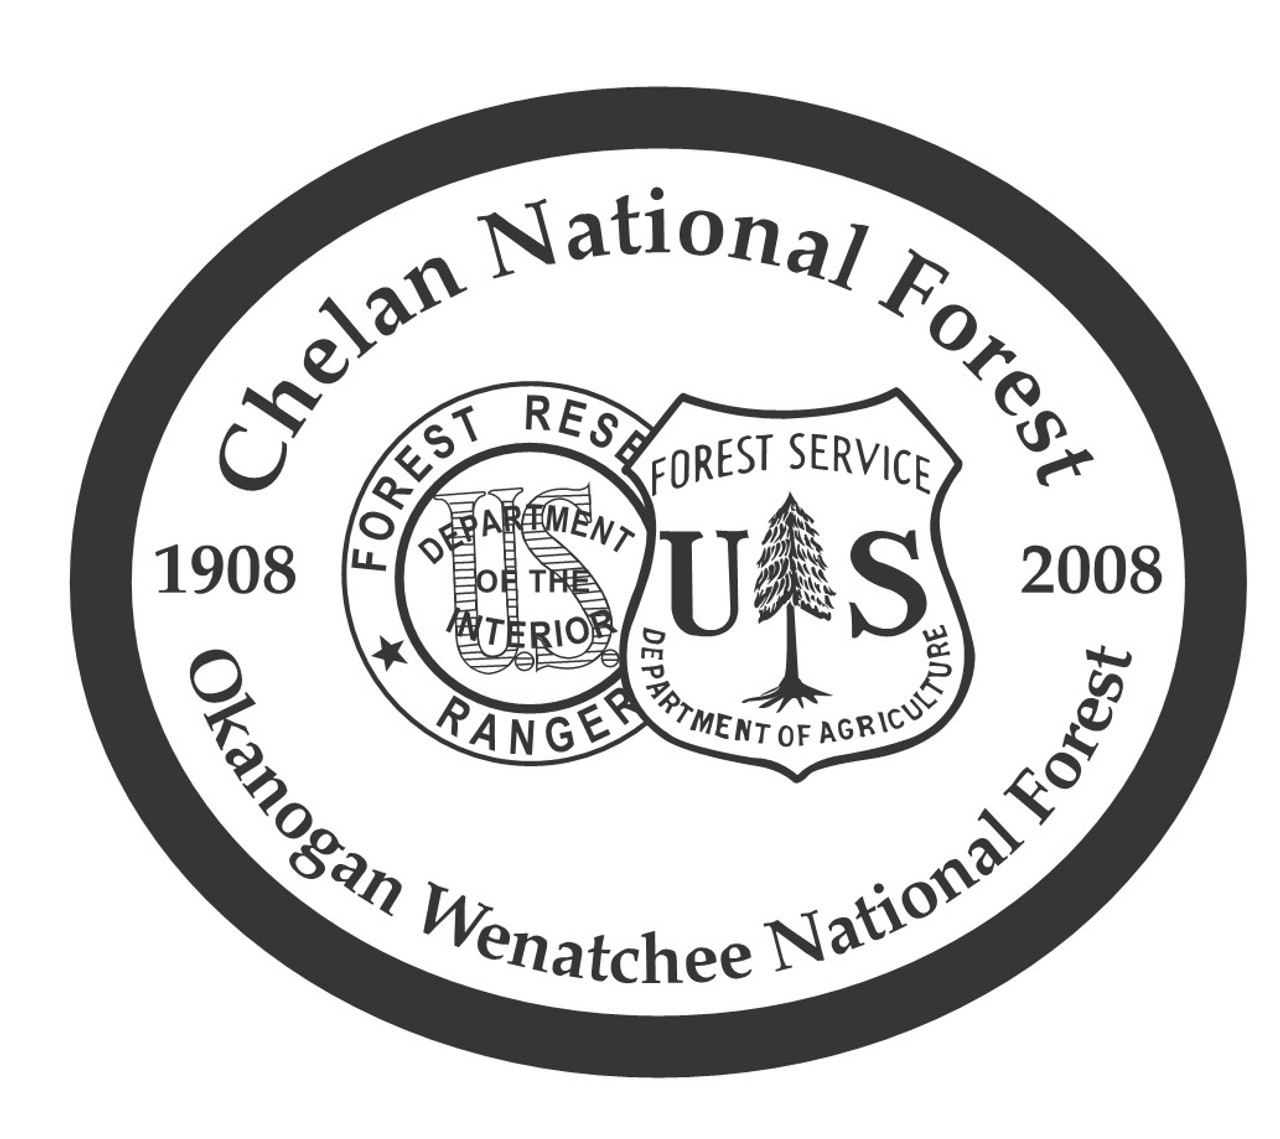 Chelan National Forest Okanogan Wenatchee National Forest Buckle